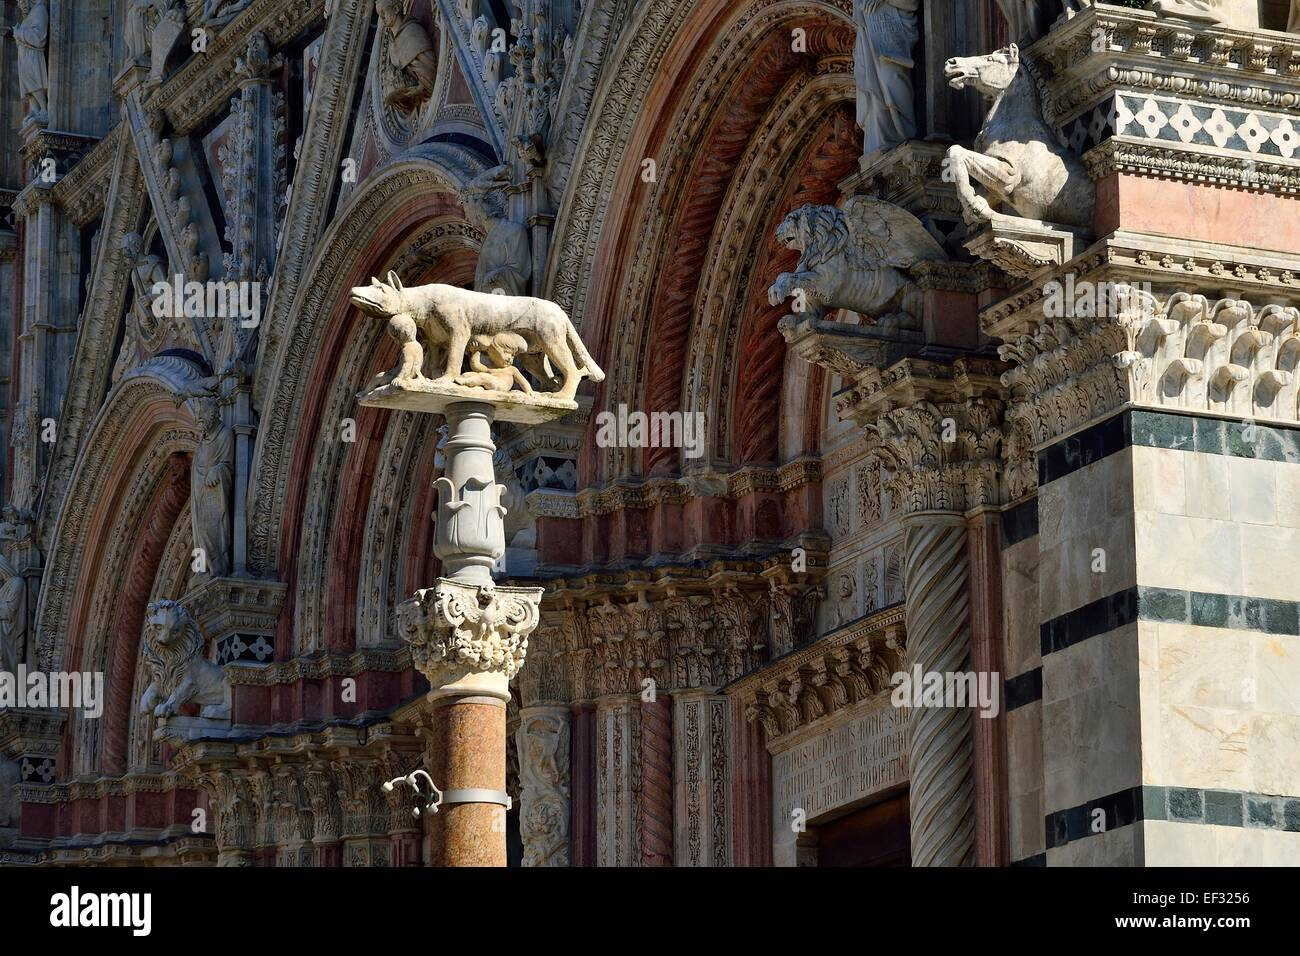 She-wolf with Romulus and Remus in front of the Duomo of Siena, Cattedrale di Santa Maria Assunta, Siena, Province - Stock Image